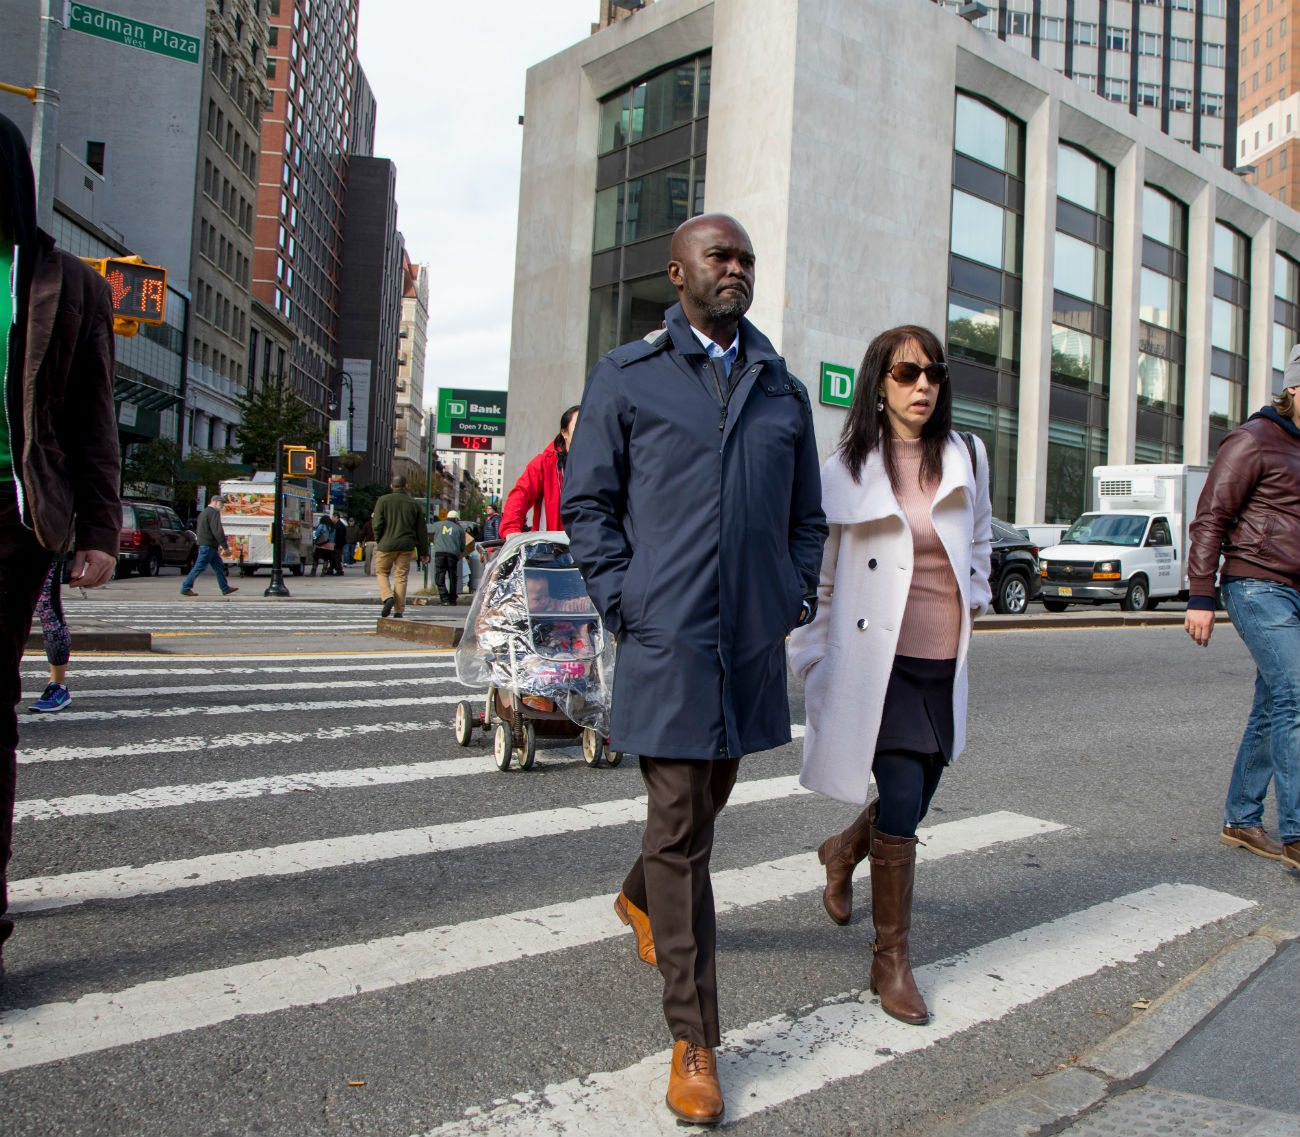 Wesley Caines (left) walks with Laura Liebman